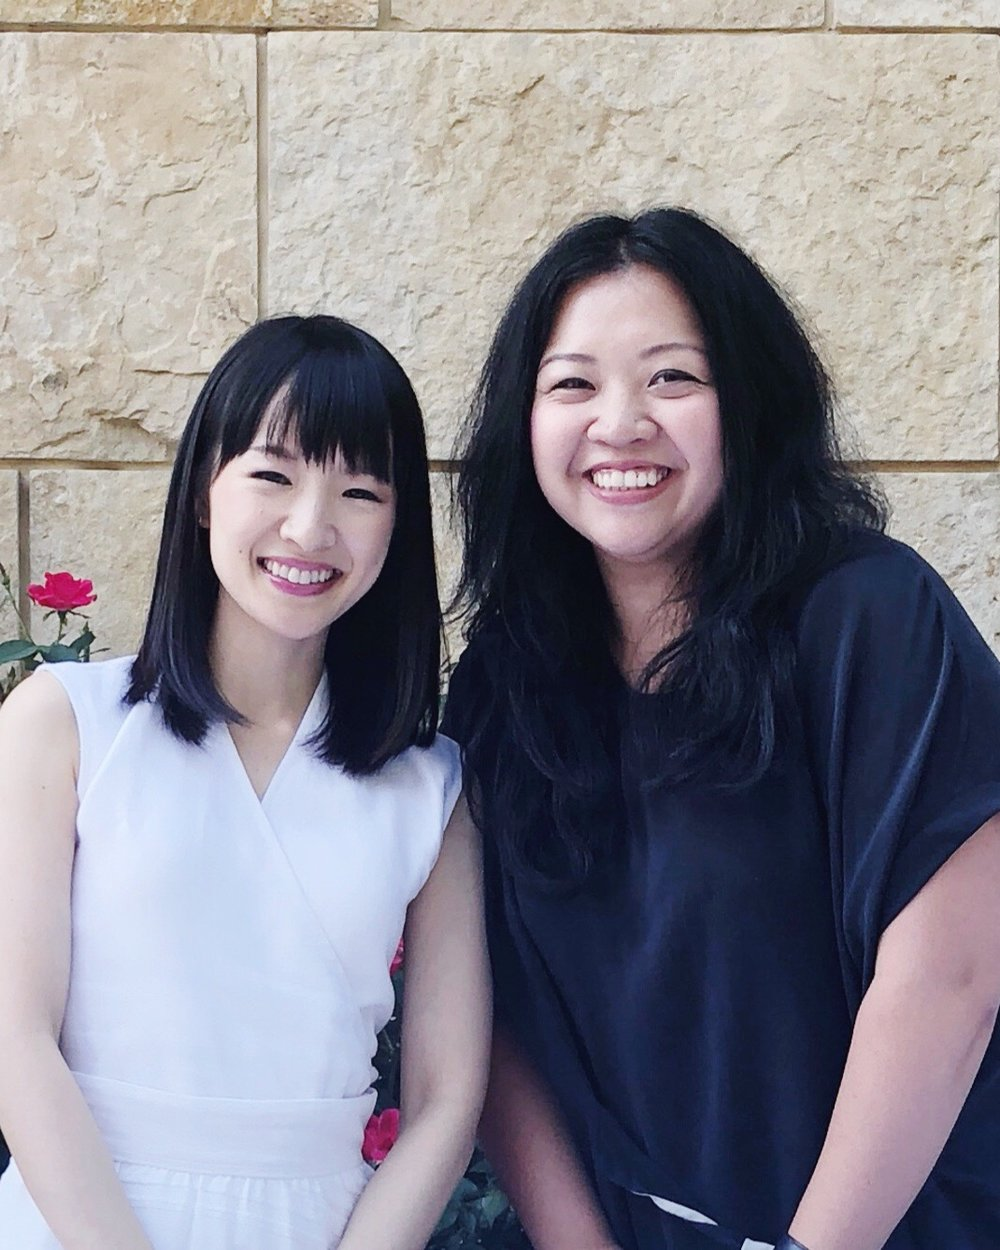 Marie Kondo (L) with Helen Youn (R), Certified KonMari Consultant